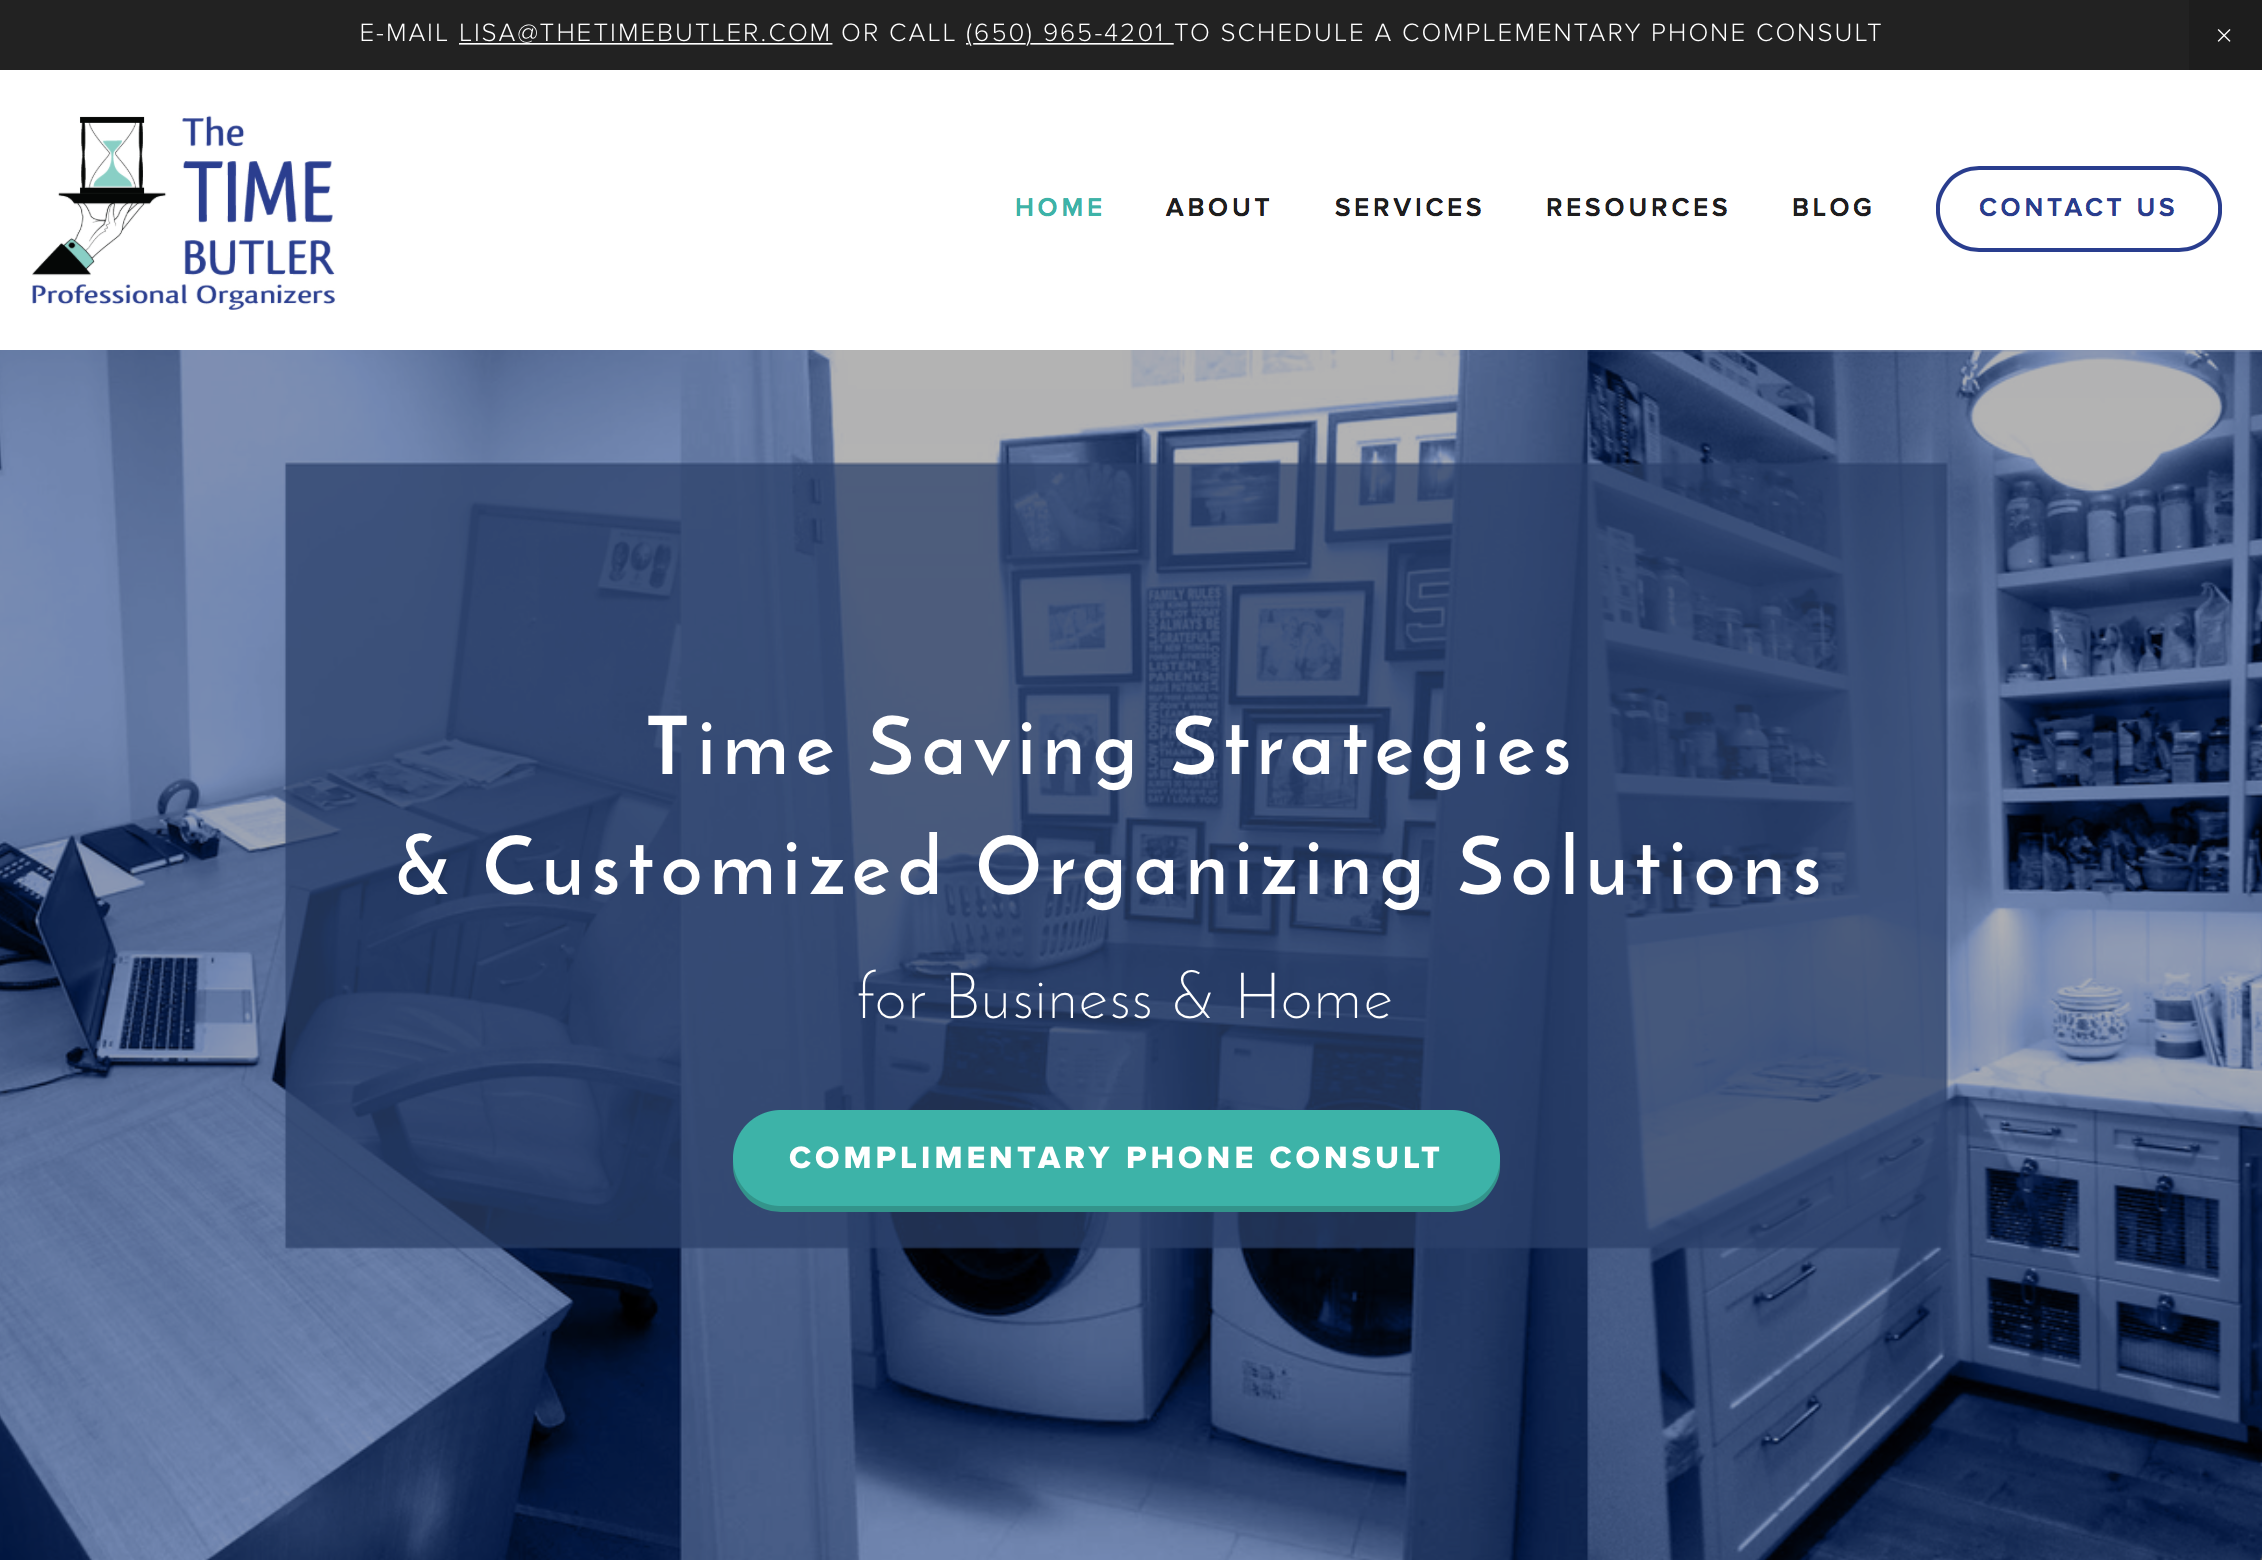 Web design for Professional Organizers